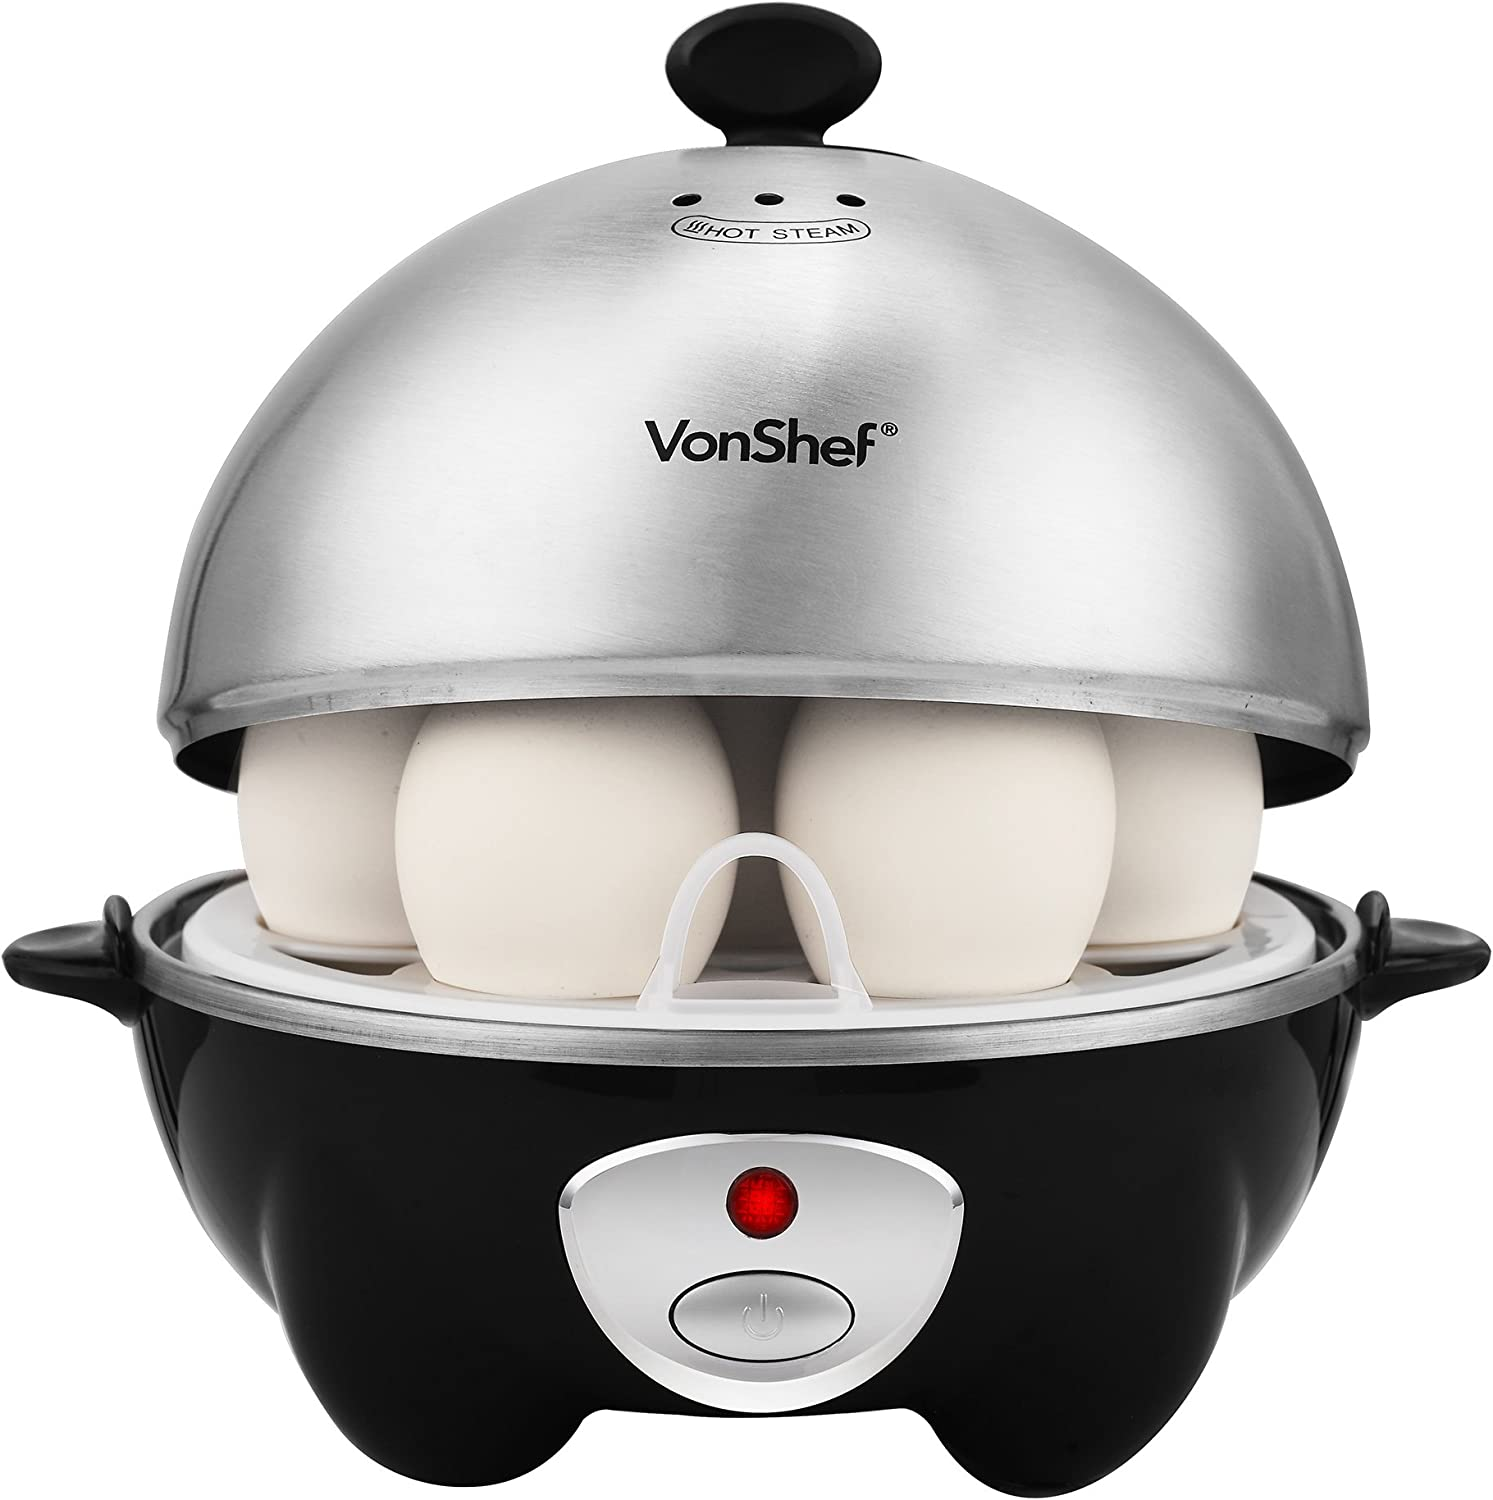 VonShef 7- Egg Electric Cooker Stainless Steel with Poacher Steamer Attachment